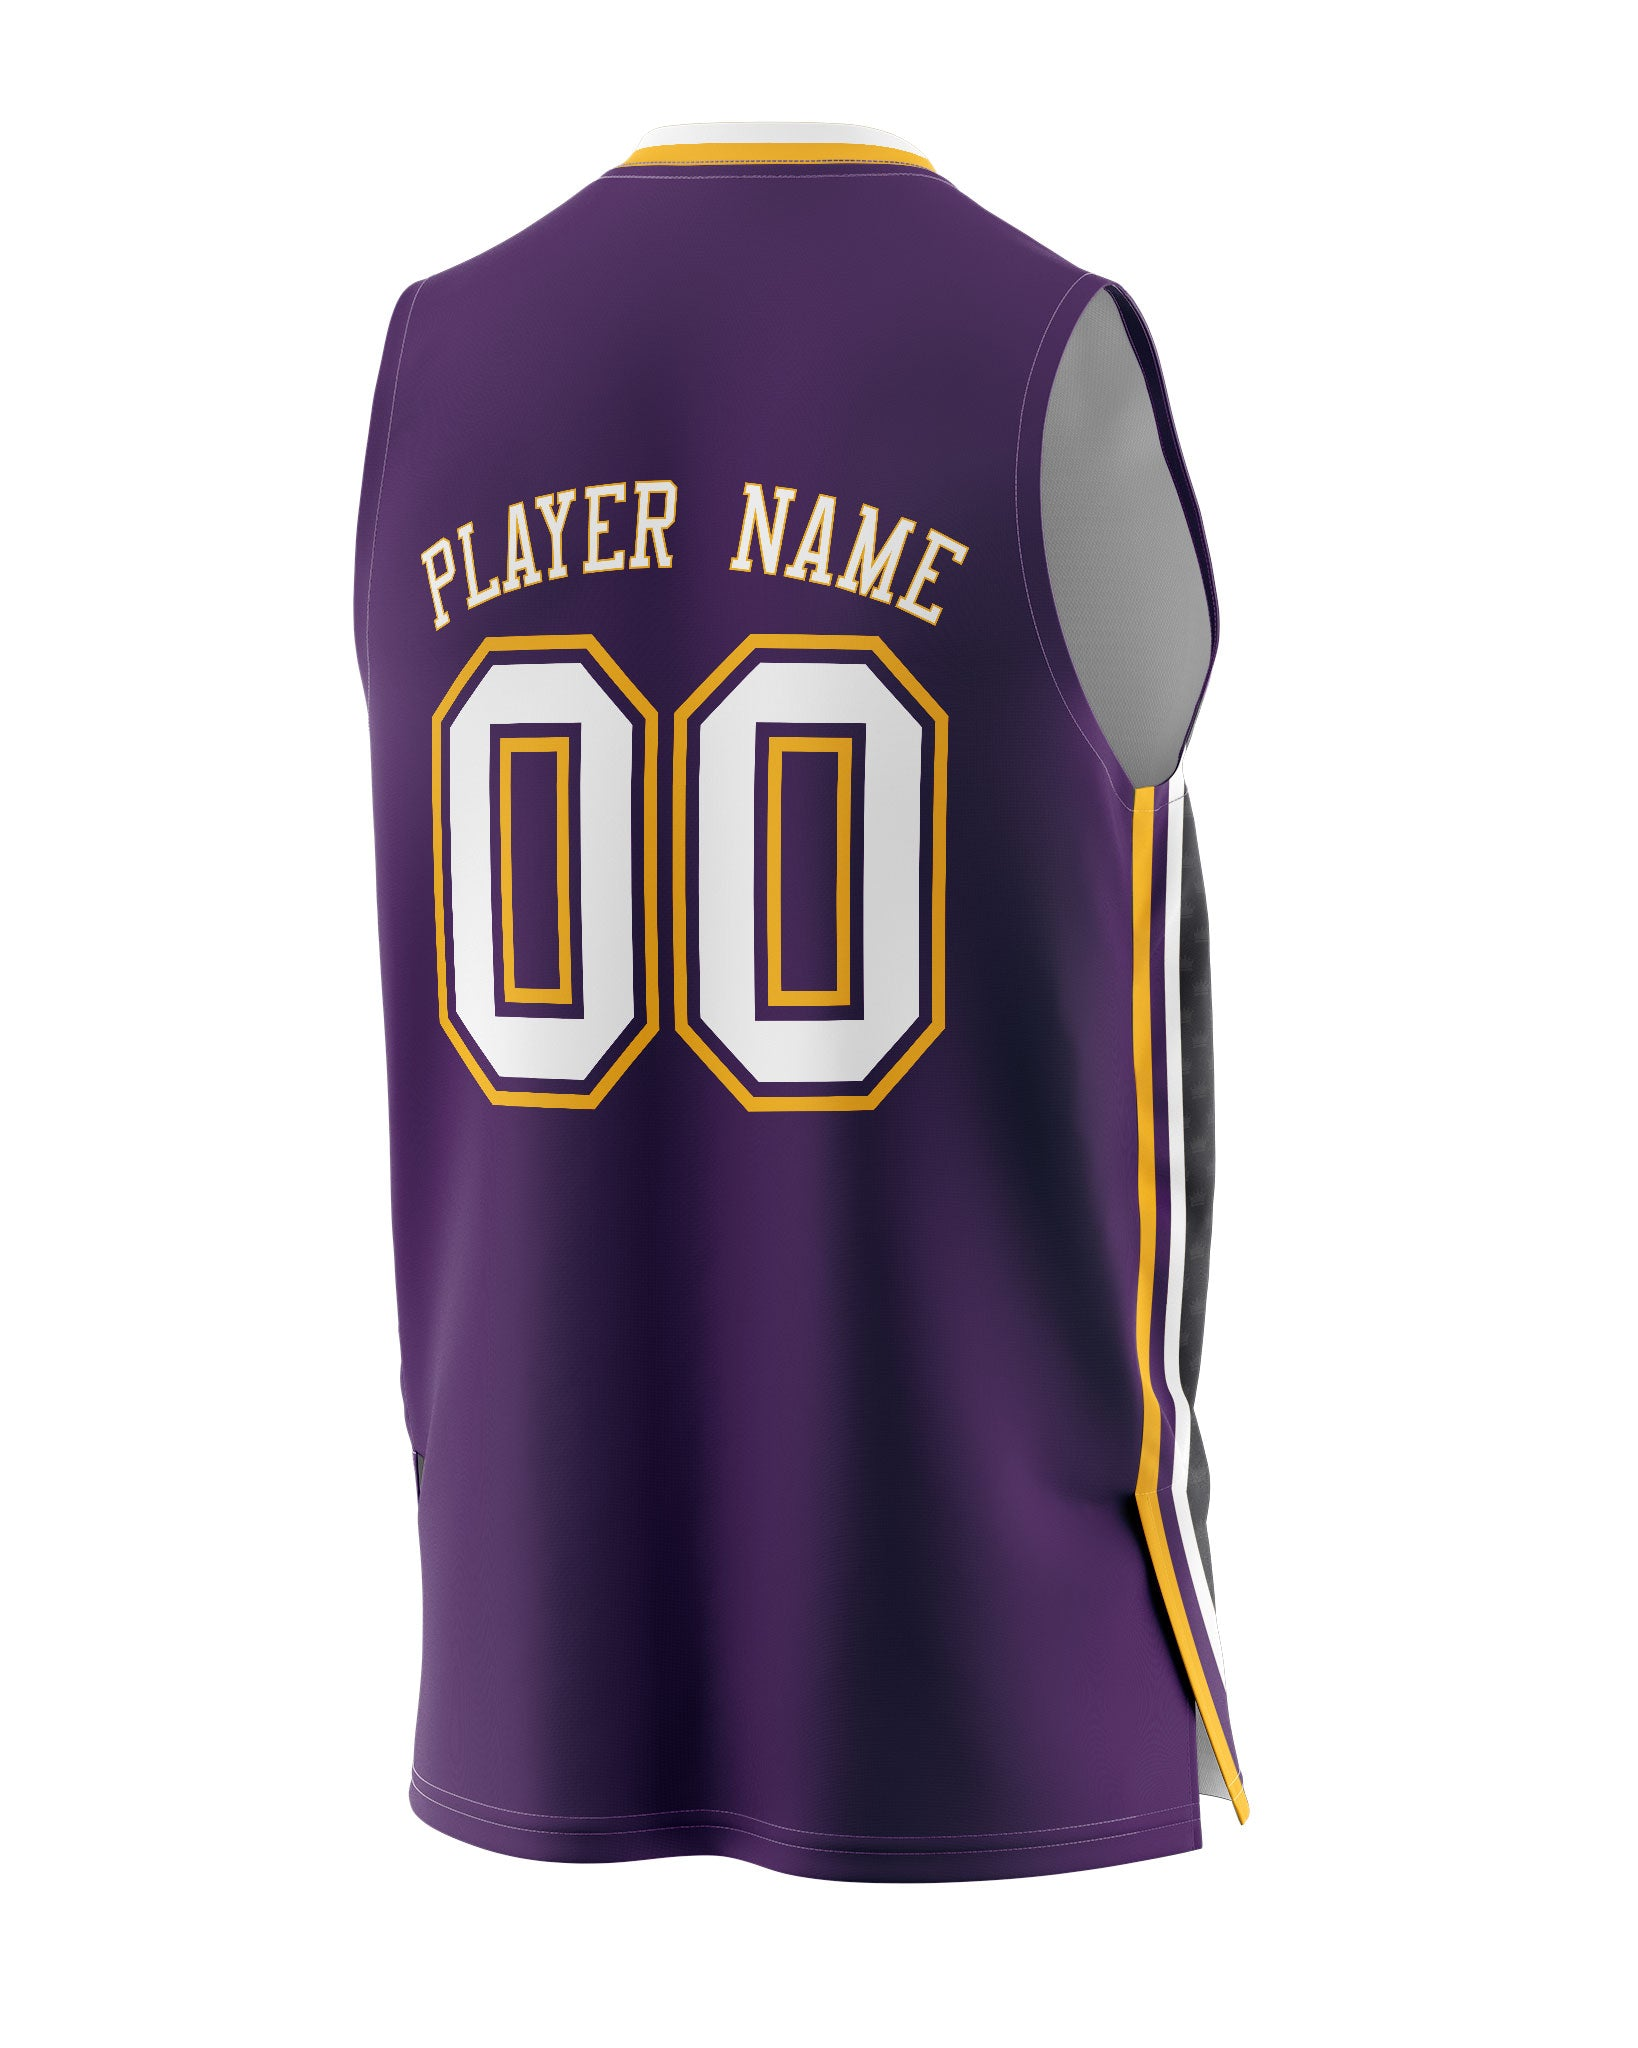 Sydney Kings 20/21 Authentic Home Jersey - Other Players